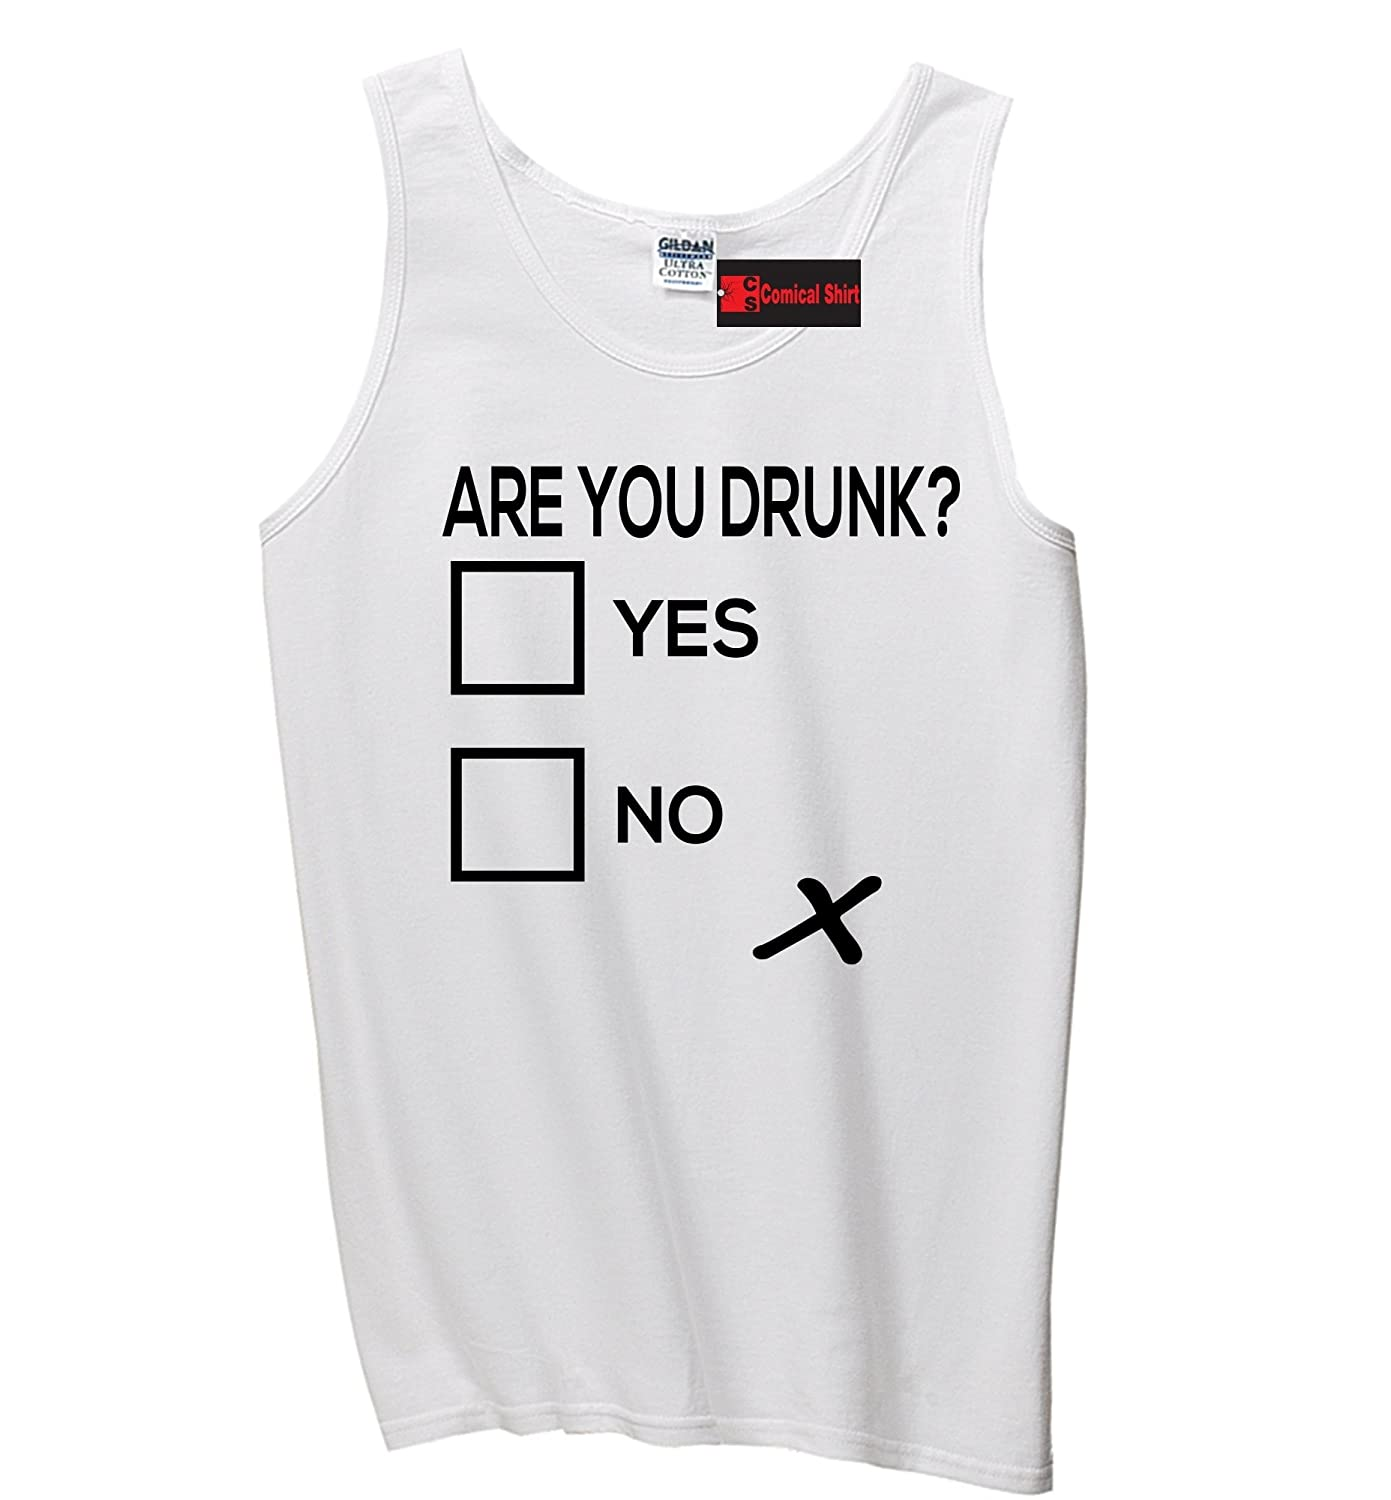 Comical Shirt Men's Are You Drunk Funny Alcohol Party Tee Tank Top hot sale